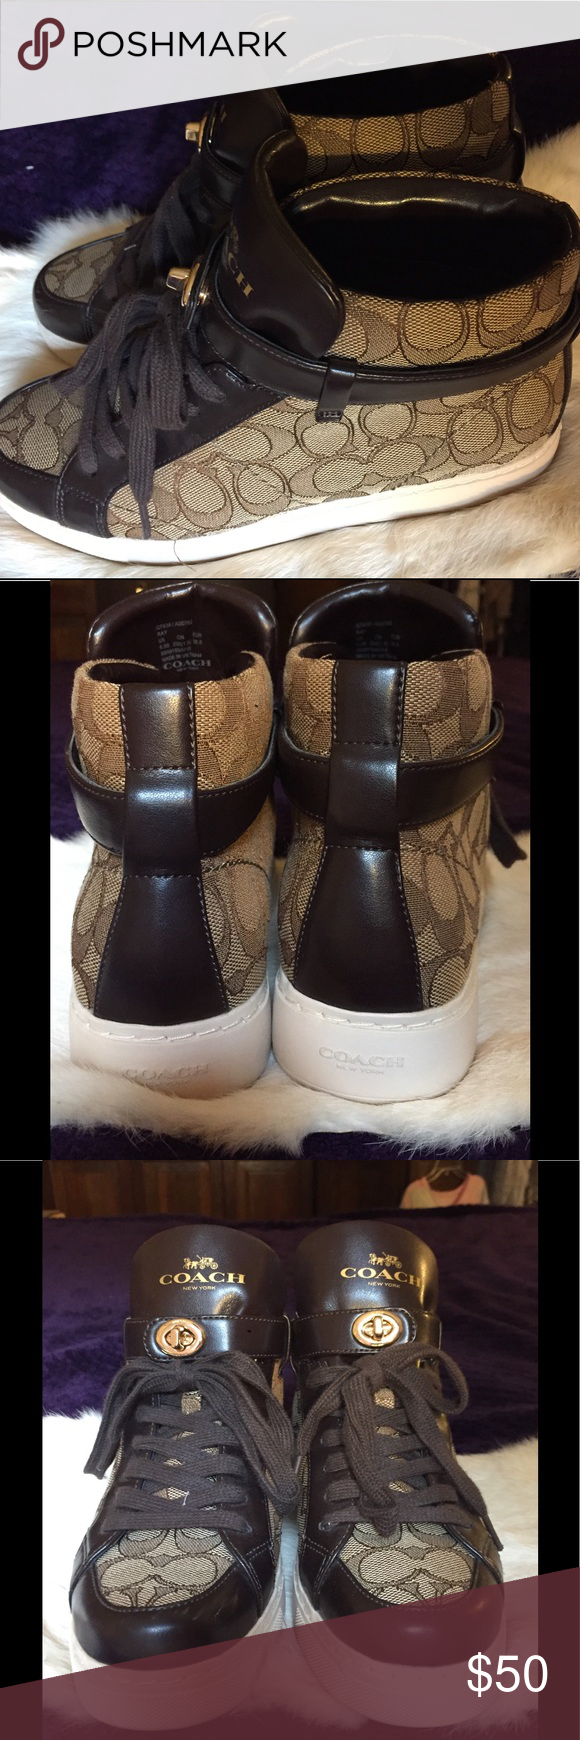 coach sneakers worn once-- perfect condition, no wear or tear, no spots or stains, quality material Coach Shoes